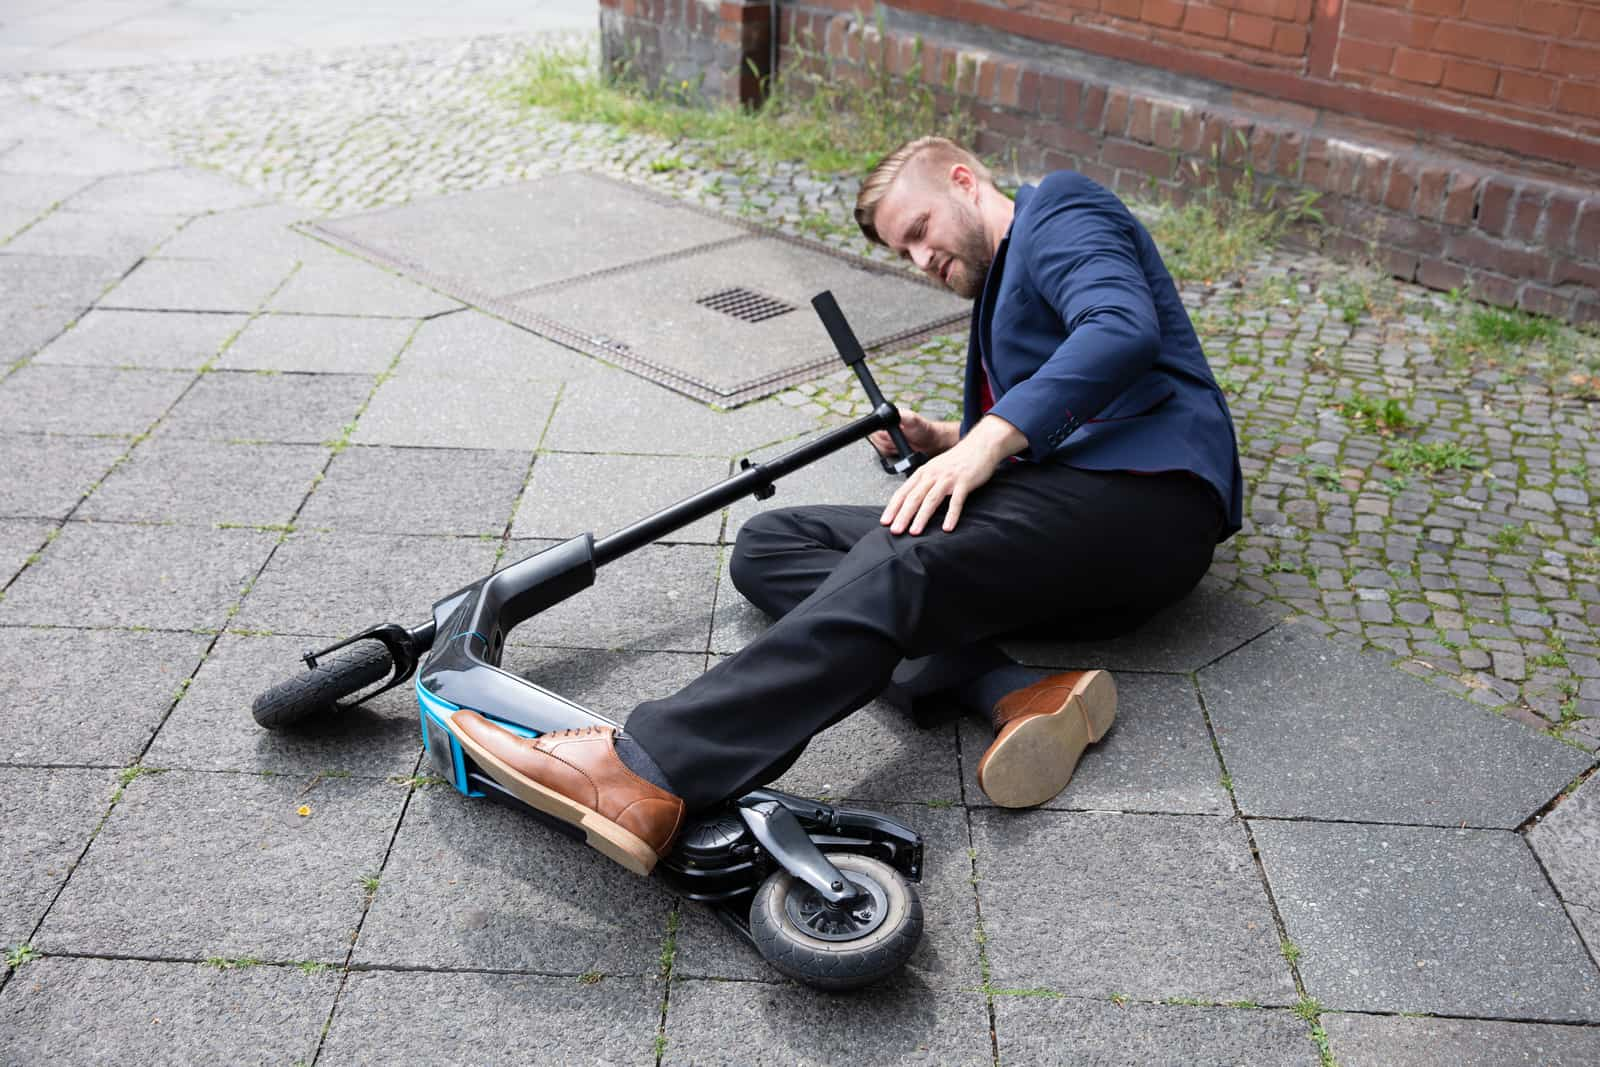 Young Man Accident With An Electric Scooter